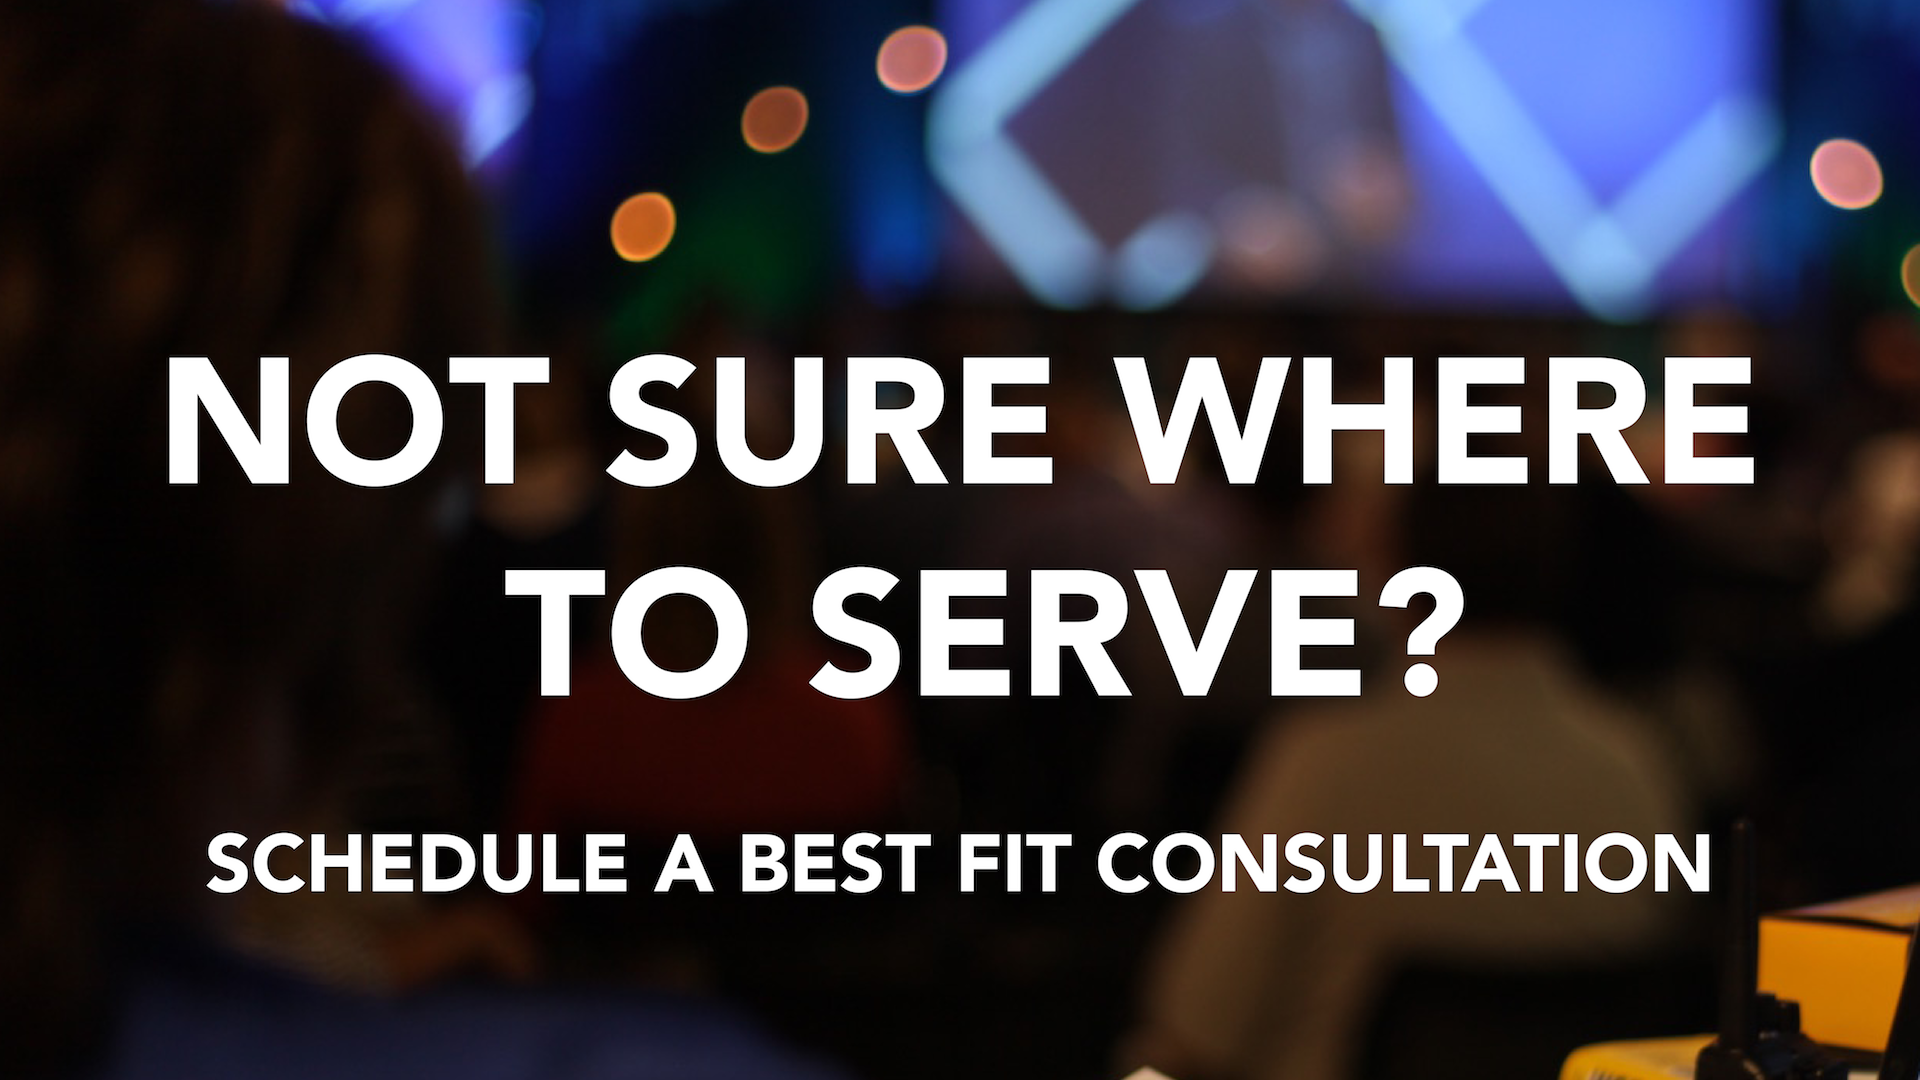 Best Fit Consultation